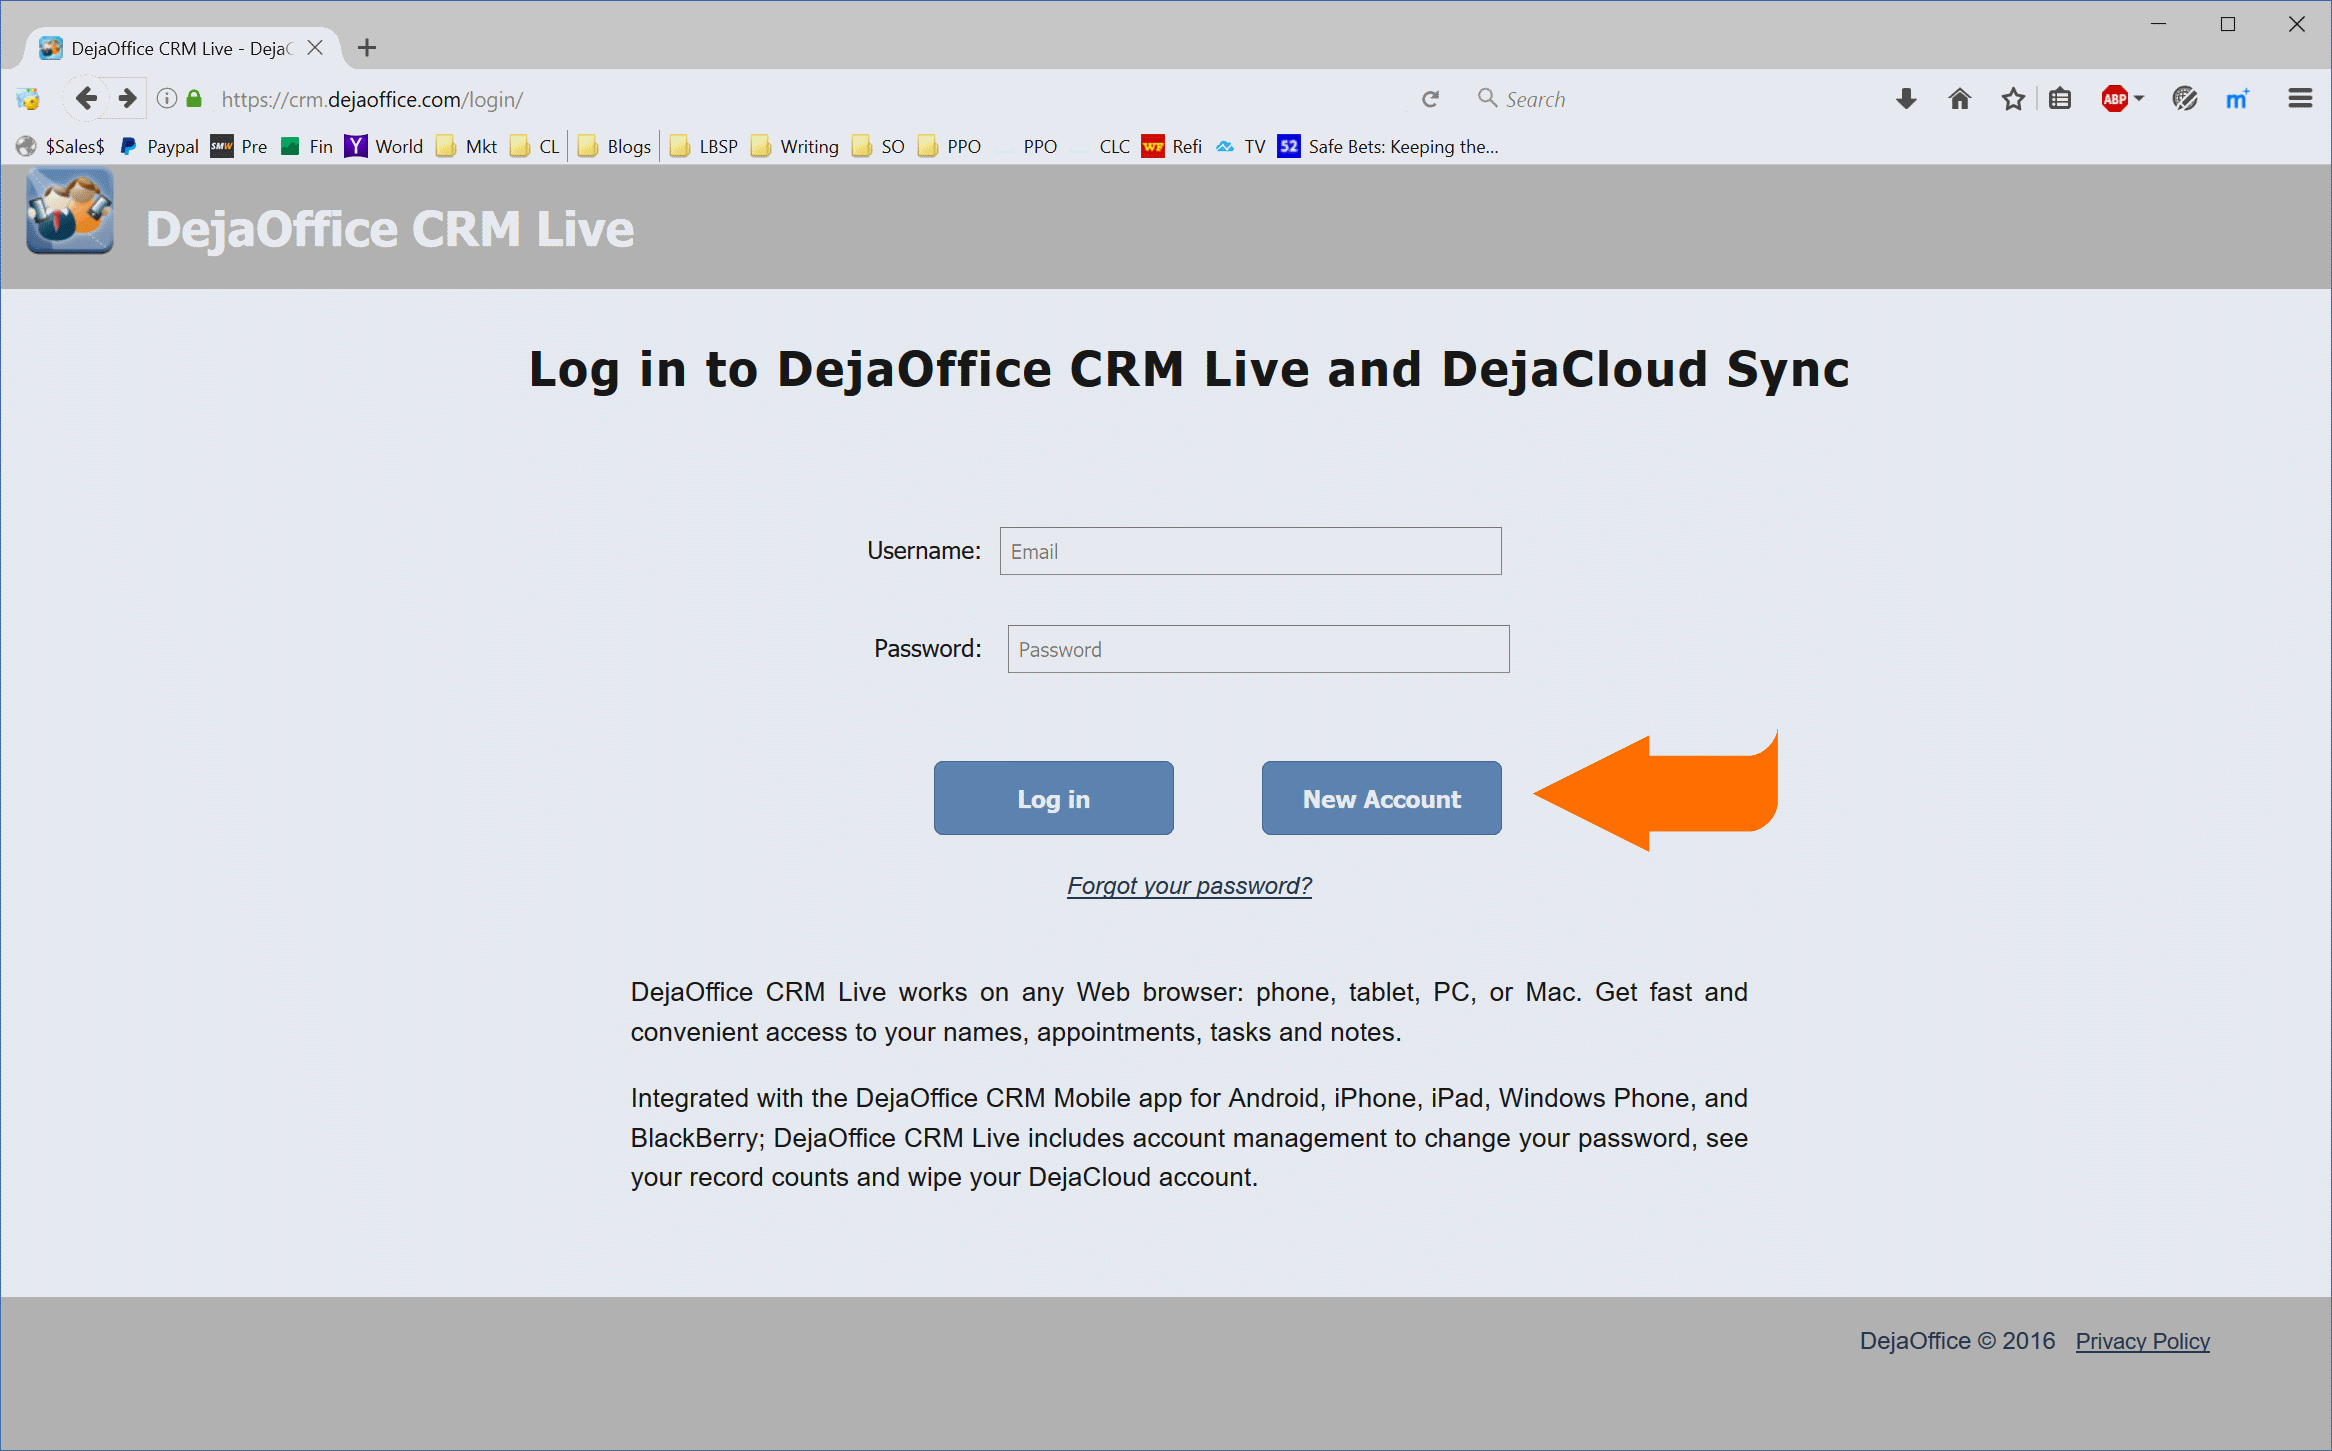 DejaOffice CRM Live Login